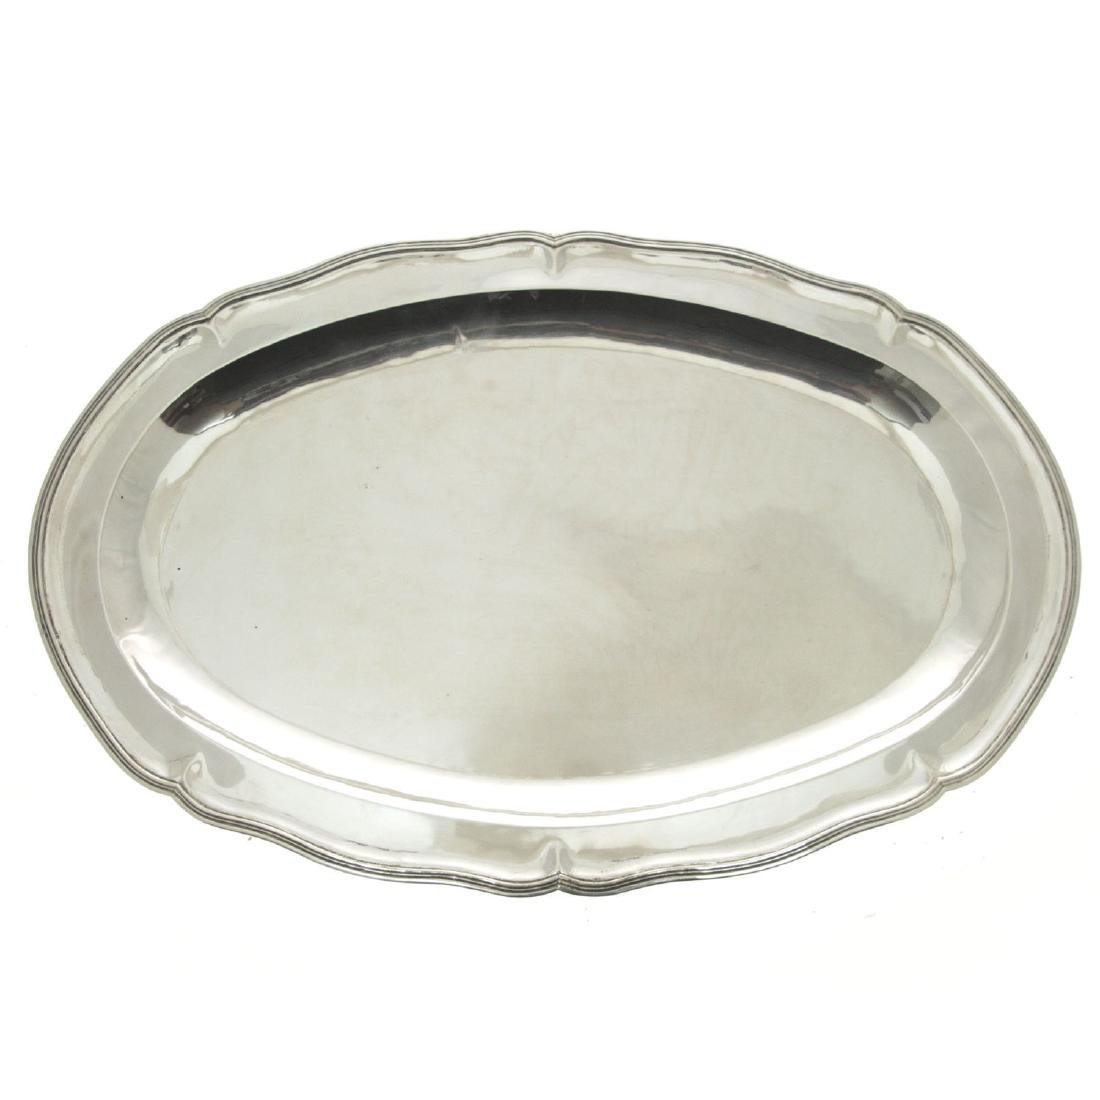 Oval Silver Serving Tray.